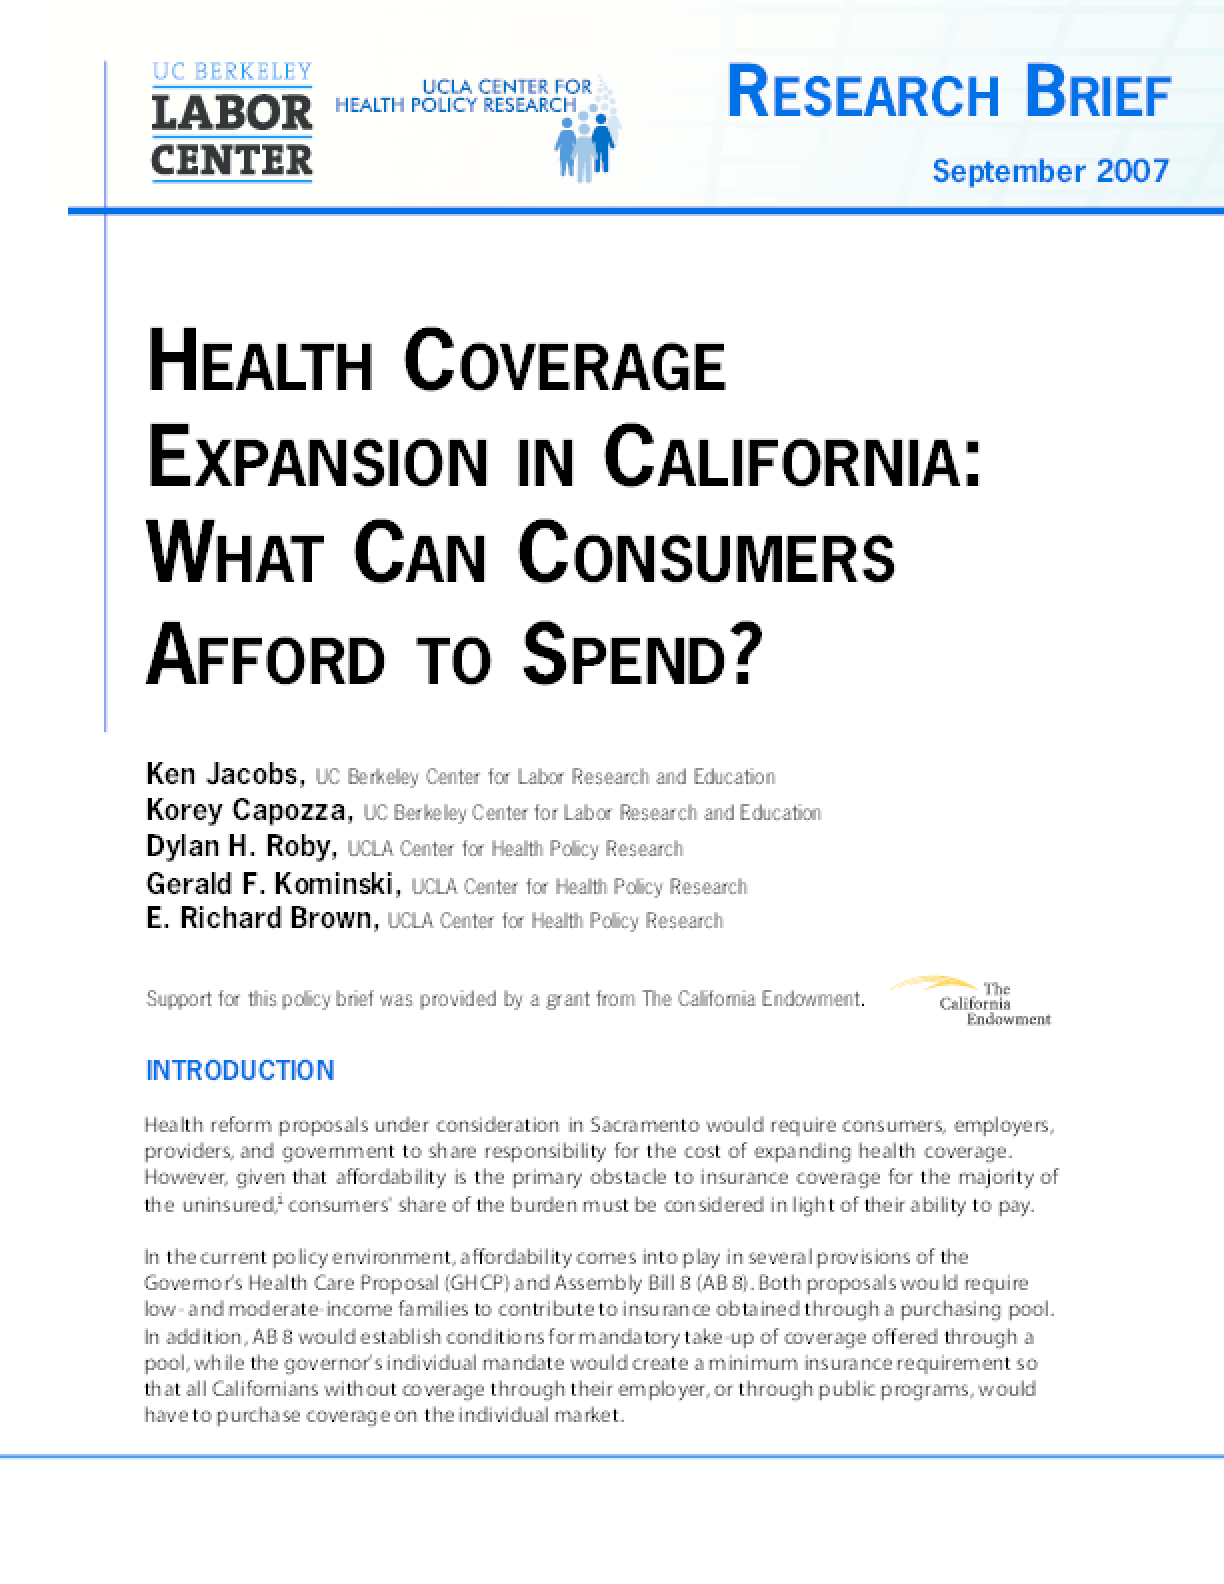 Health Coverage Expansion in California: What Can Consumers Afford to Spend?